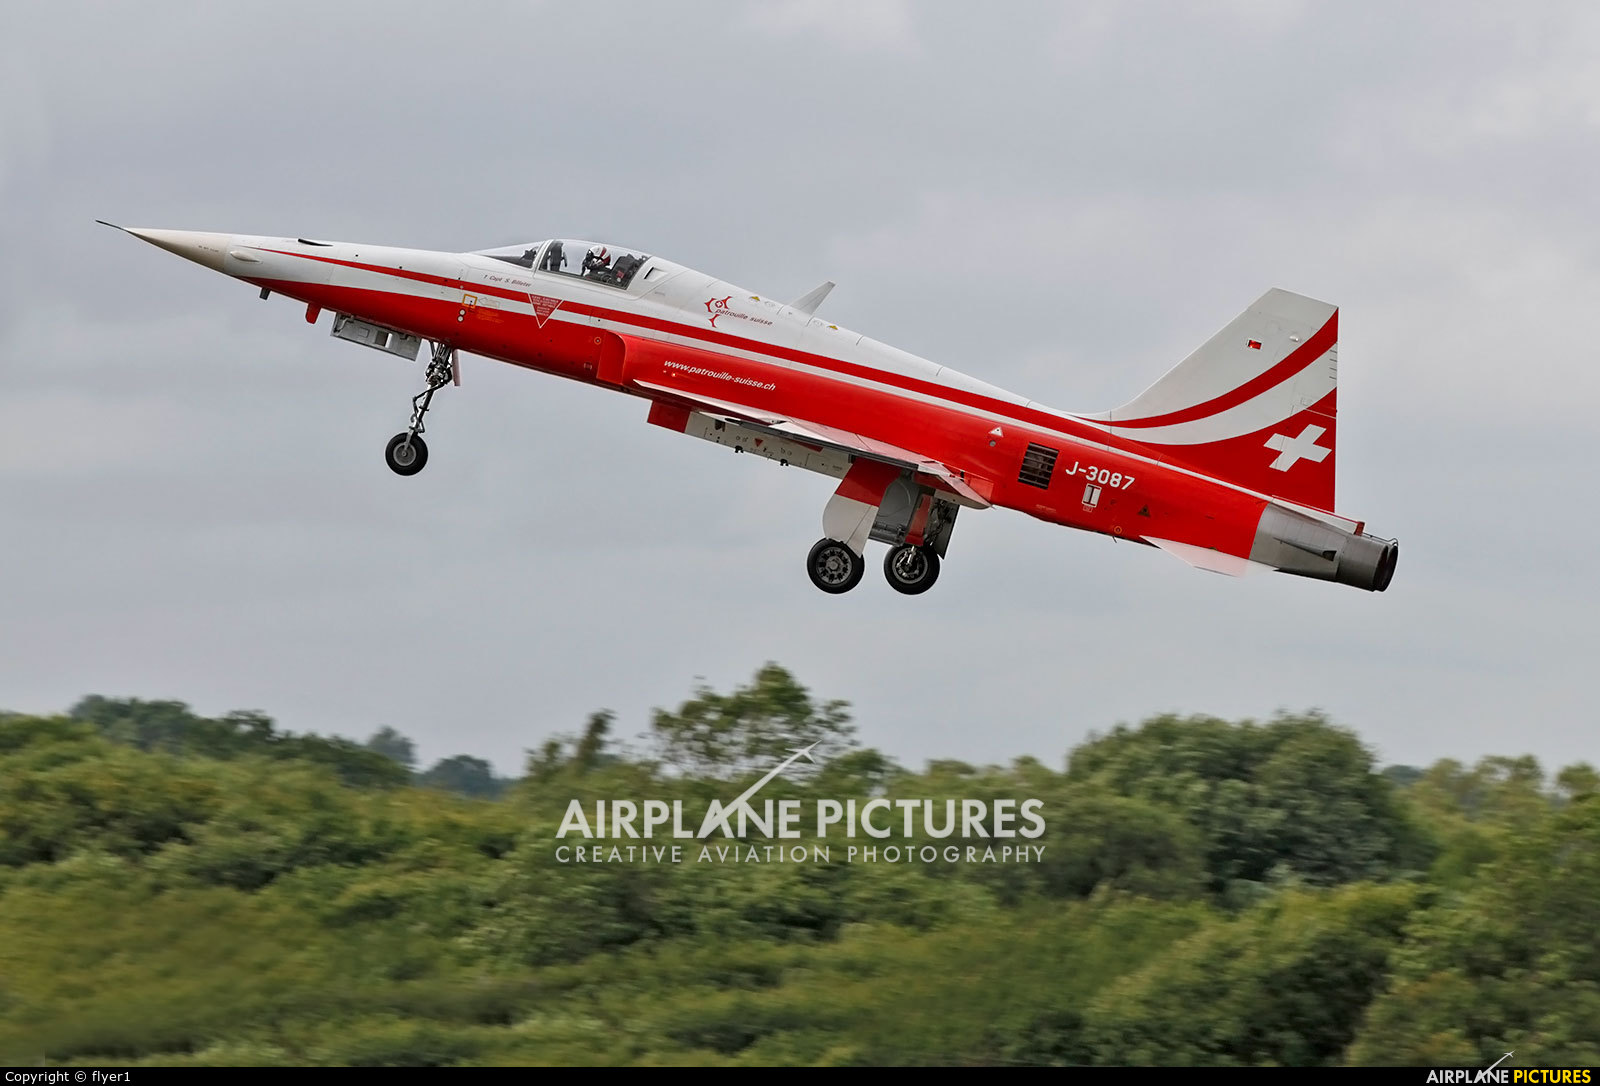 Switzerland - Air Force: Patrouille Suisse J-3087 aircraft at Fairford